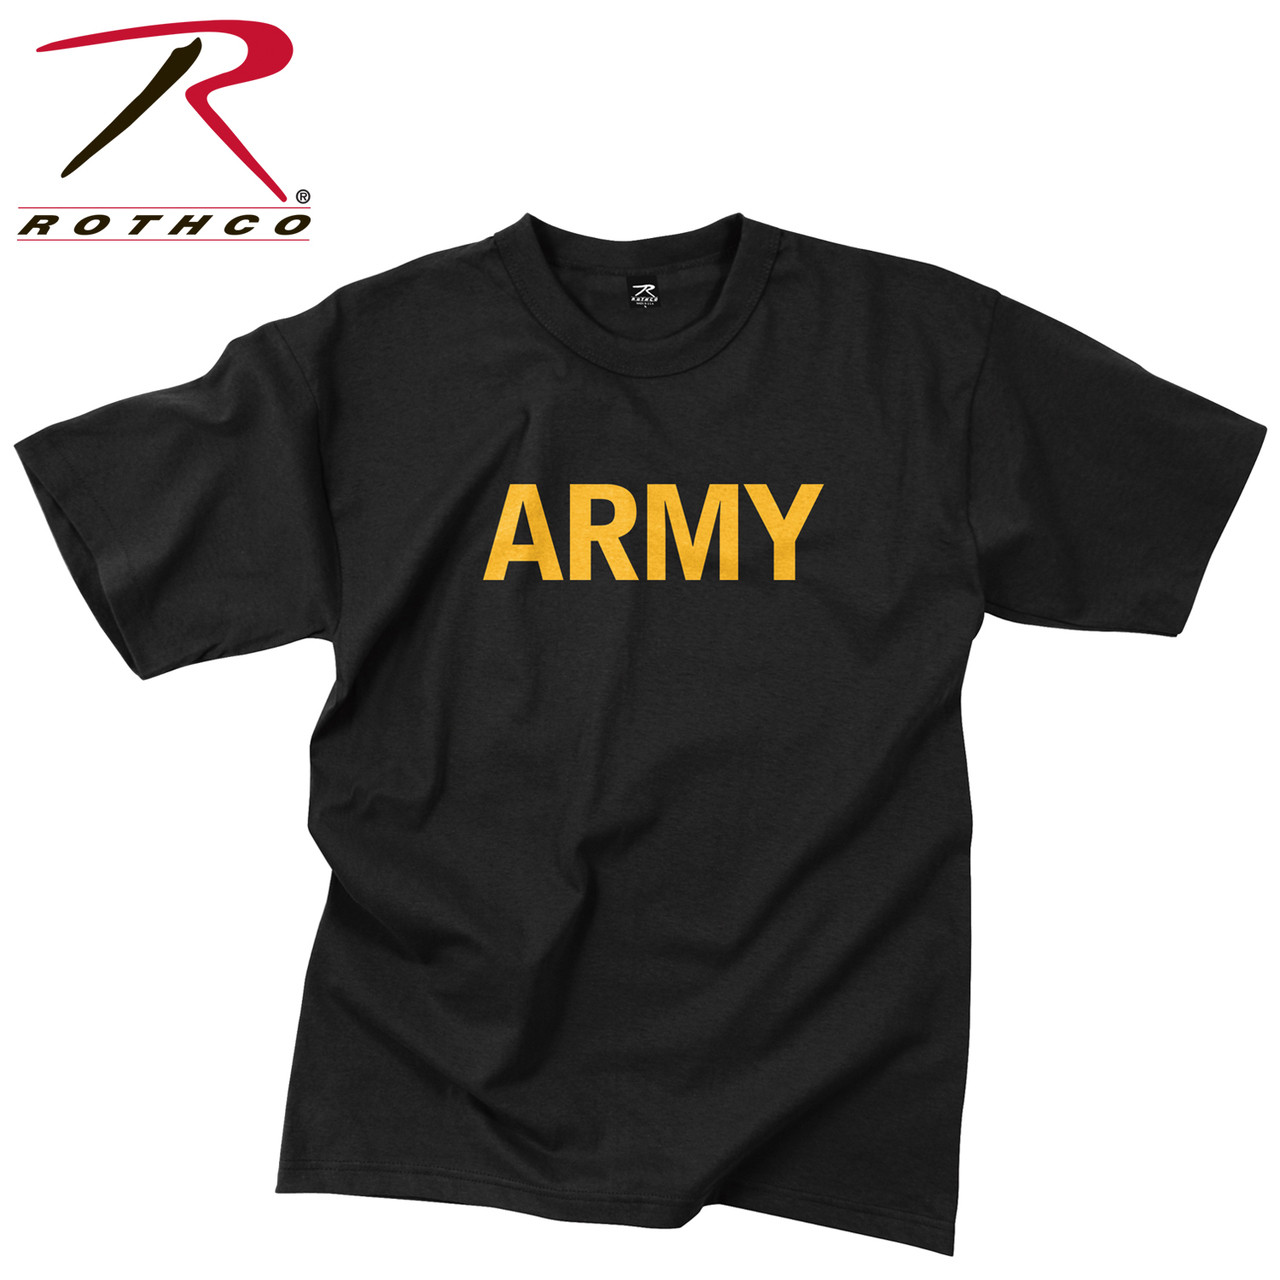 141667a0 Rothco Army T-Shirt - LMGS Online